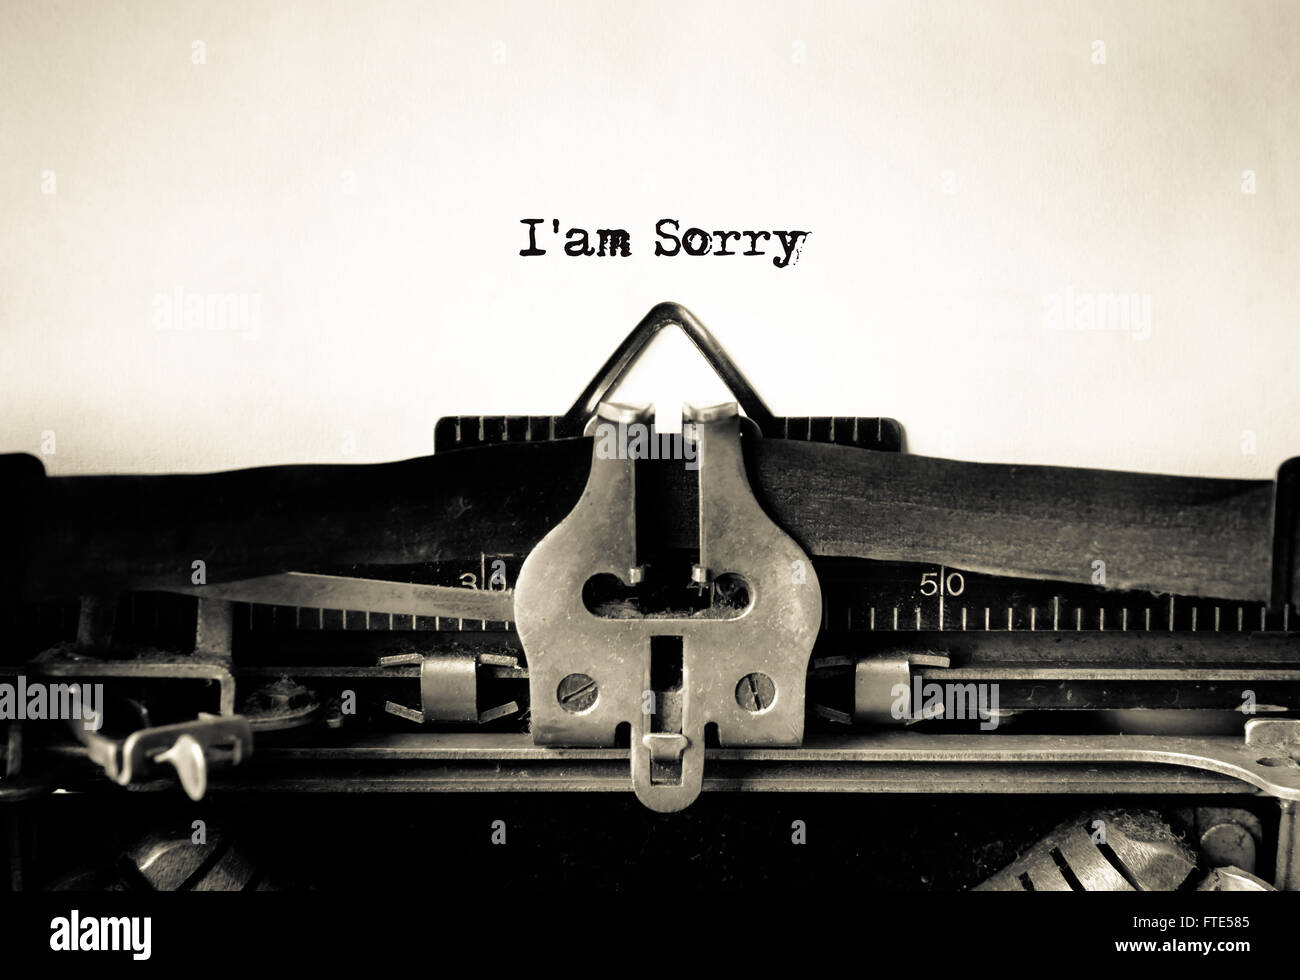 I am Sorry message typed on vintage typewriter - Stock Image